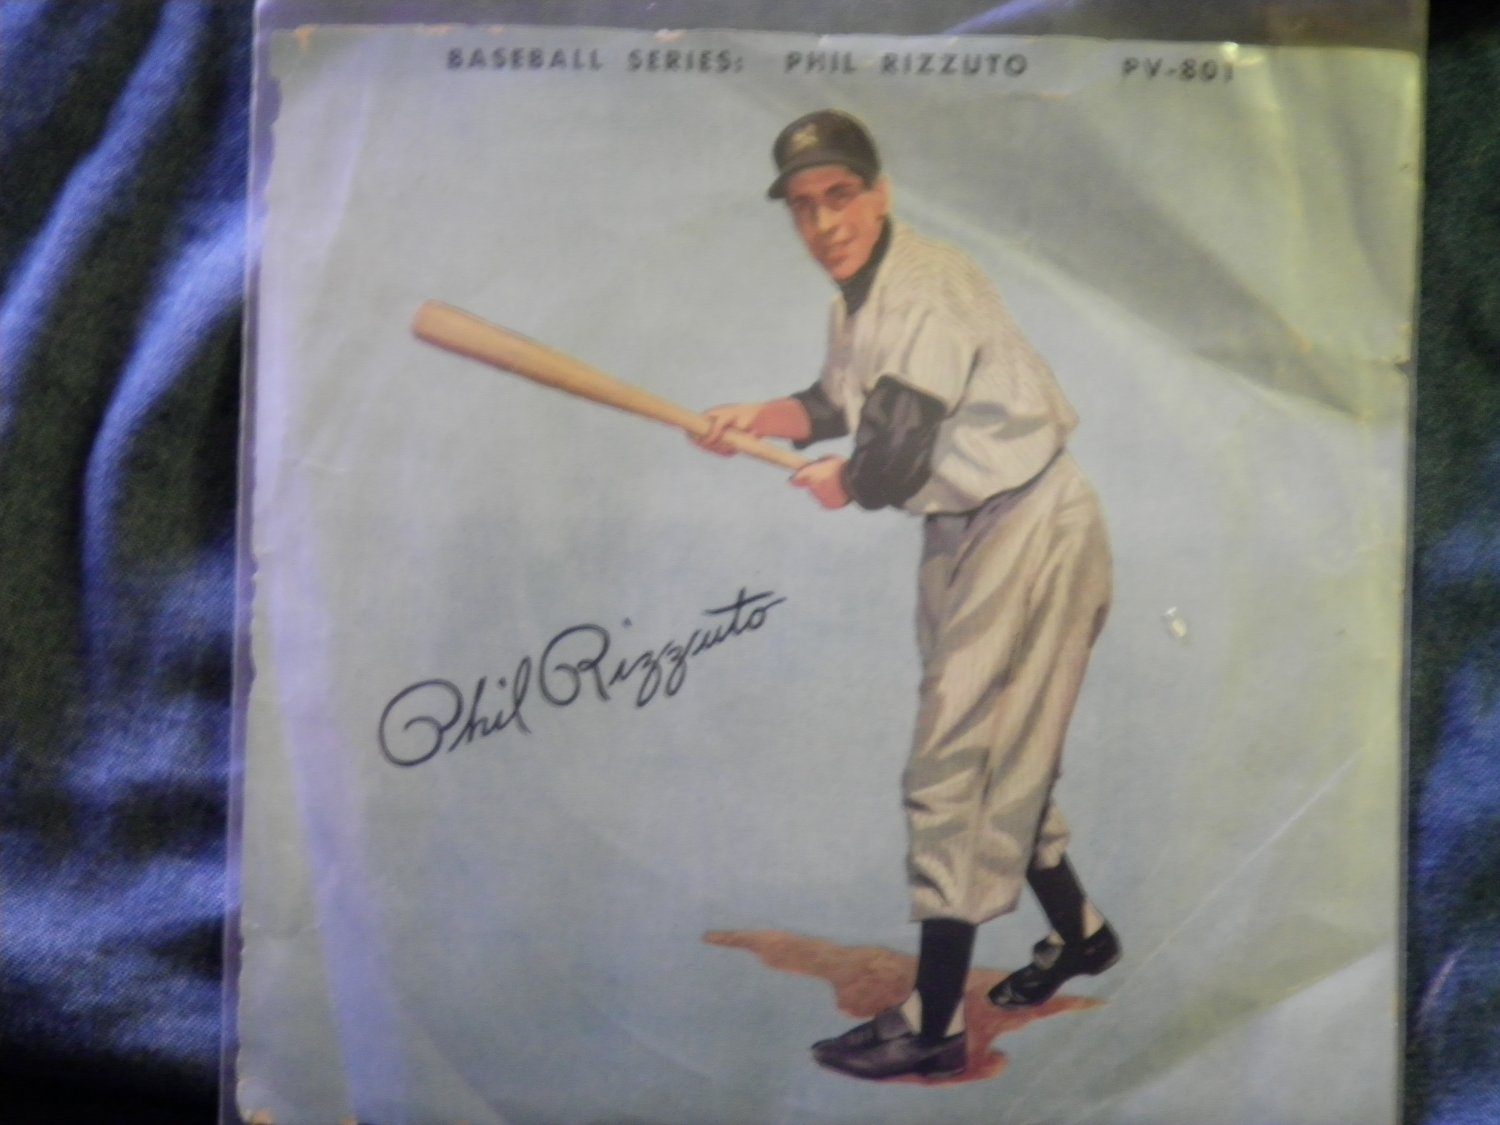 45 PHIL RIZZUTO Baseball Series vintage red vinyl record W/PICTURE SLEEVE